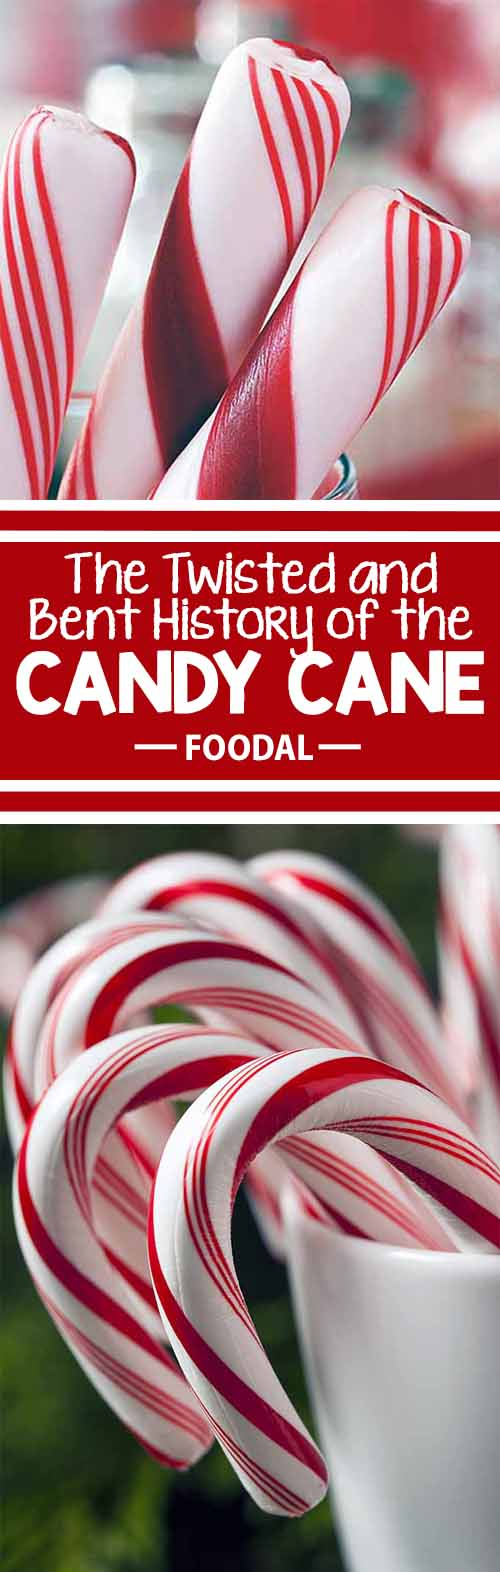 How did we get the idea for the candy cane? We hang them from our Christmas trees, hand them out as gifts, and enjoy their sweet minty flavor and characteristic crunch each winter season. But have you ever stopped to wonder how someone got the idea for these staff-shaped candies in the first place? Foodal tries to find the answer this holiday season. Read more now!